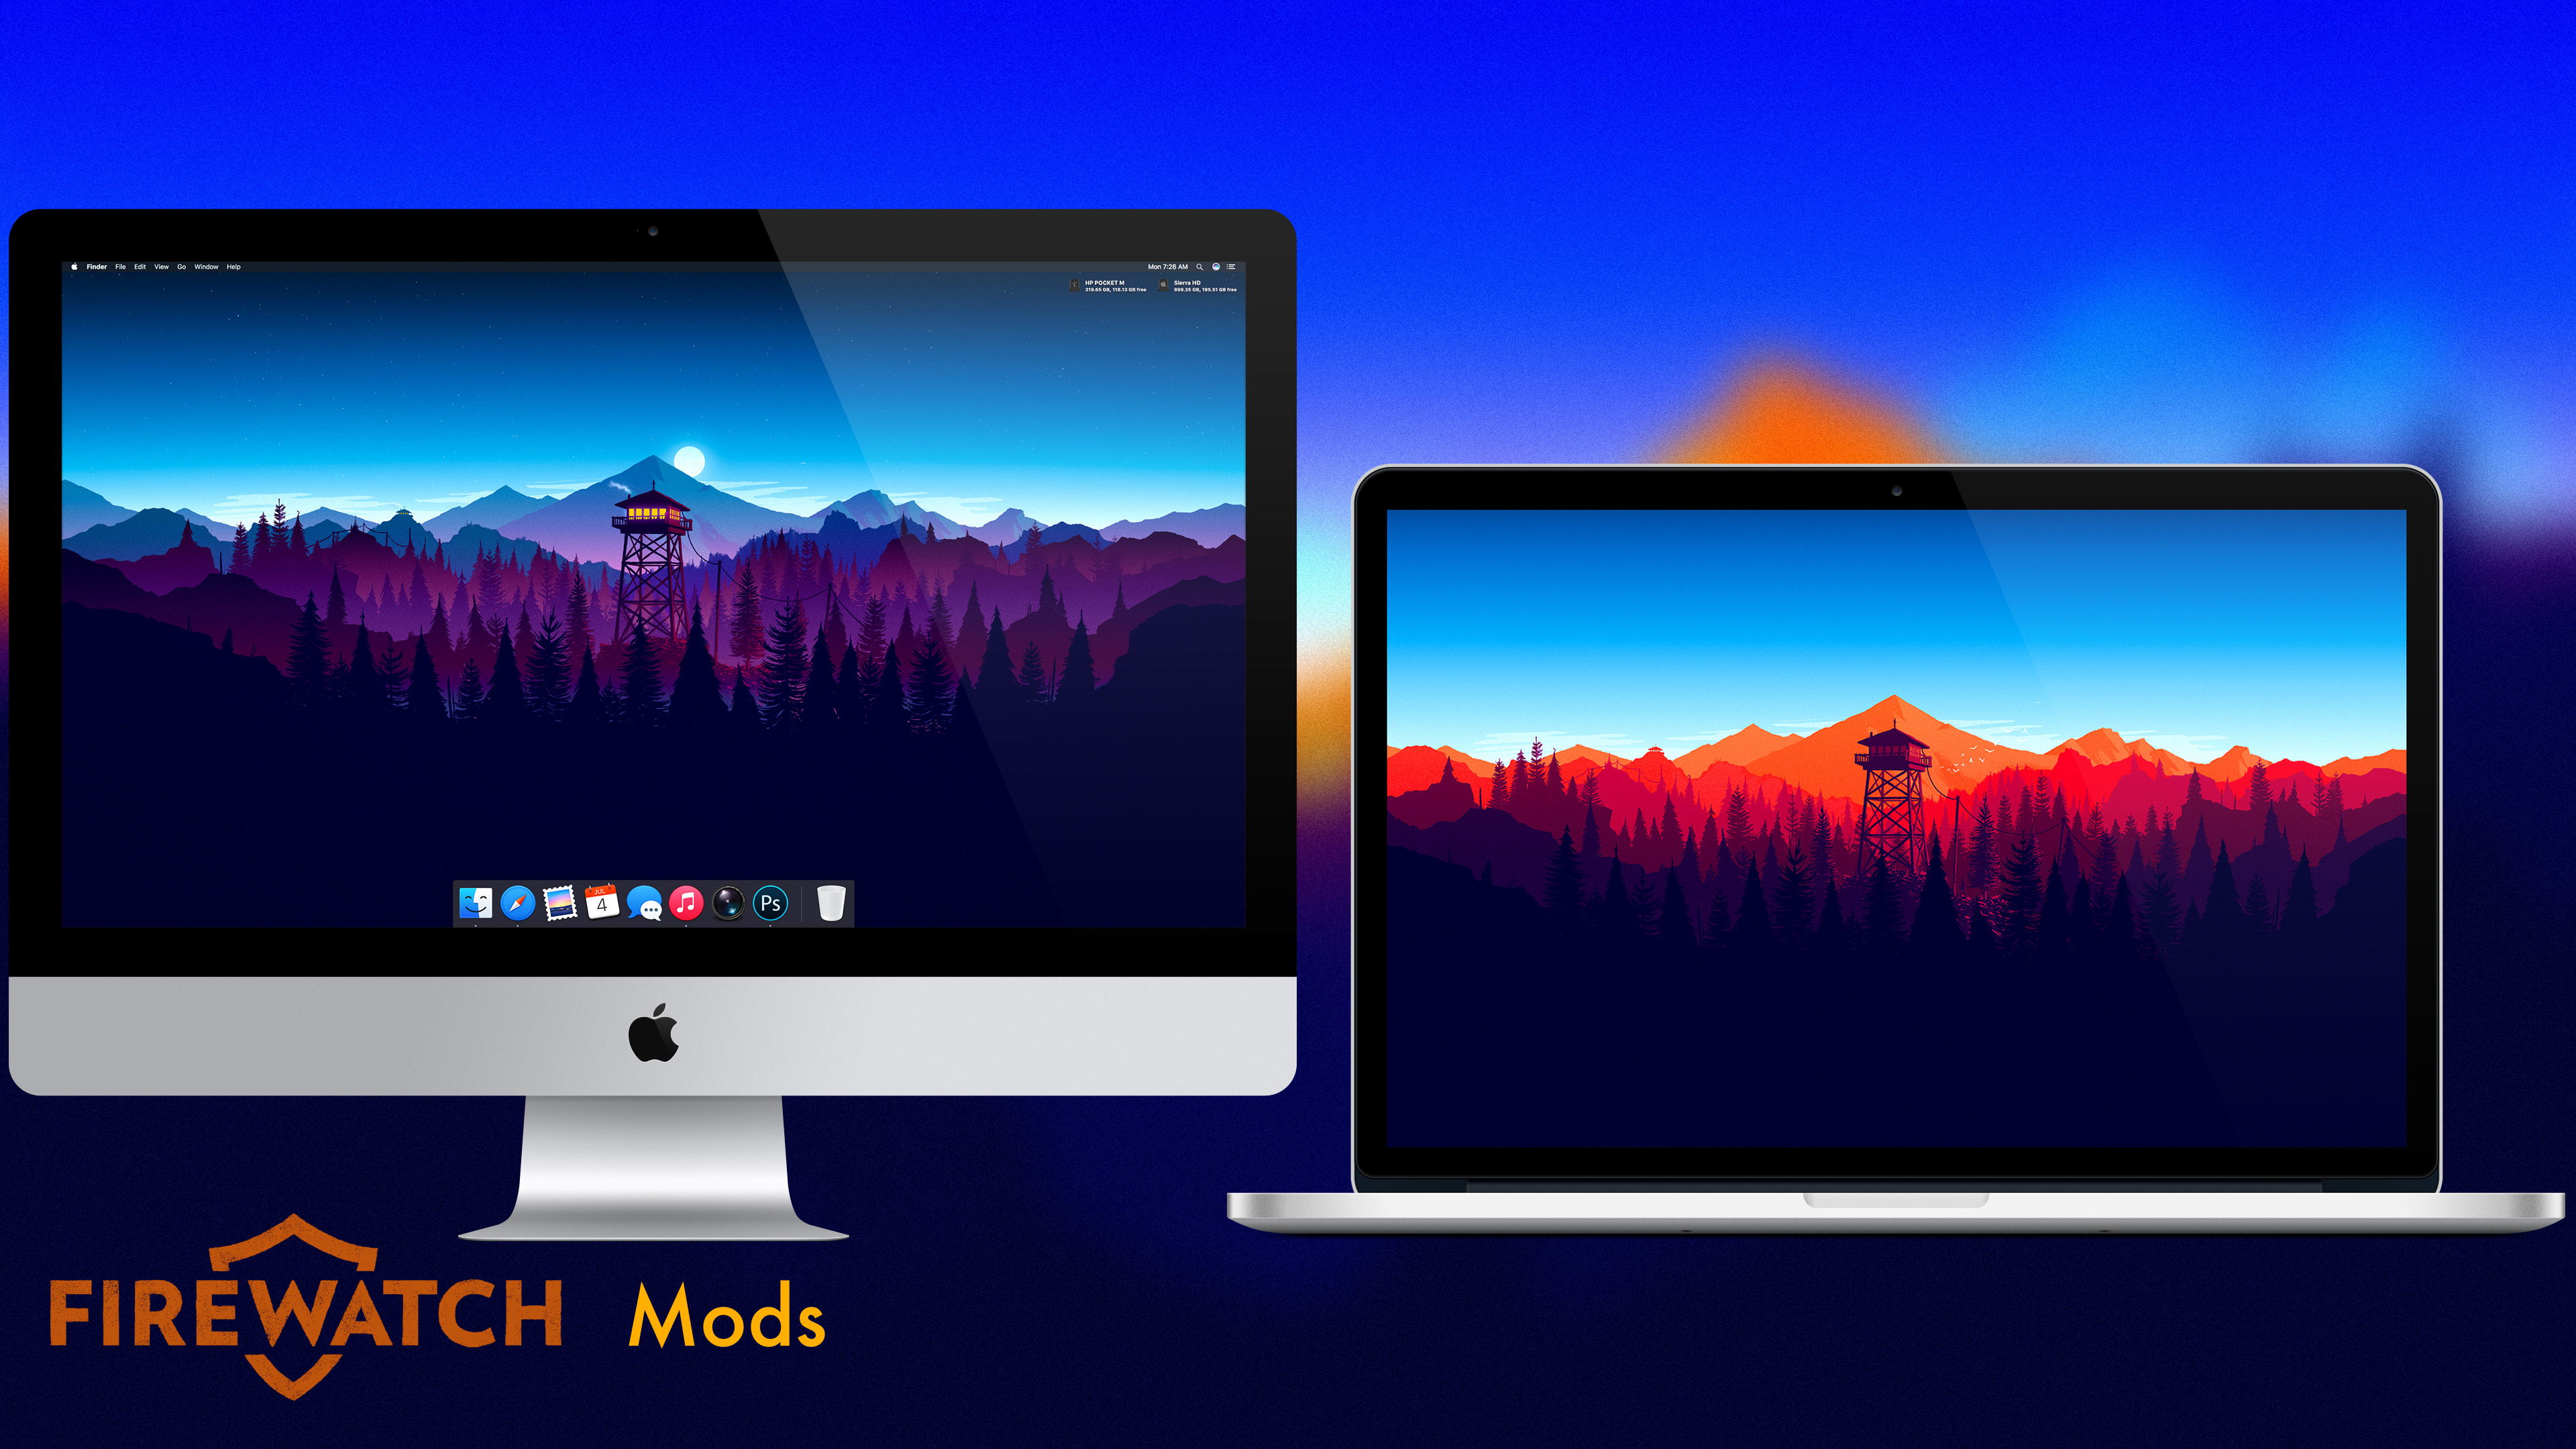 Firewatch Mods by AaronOlive